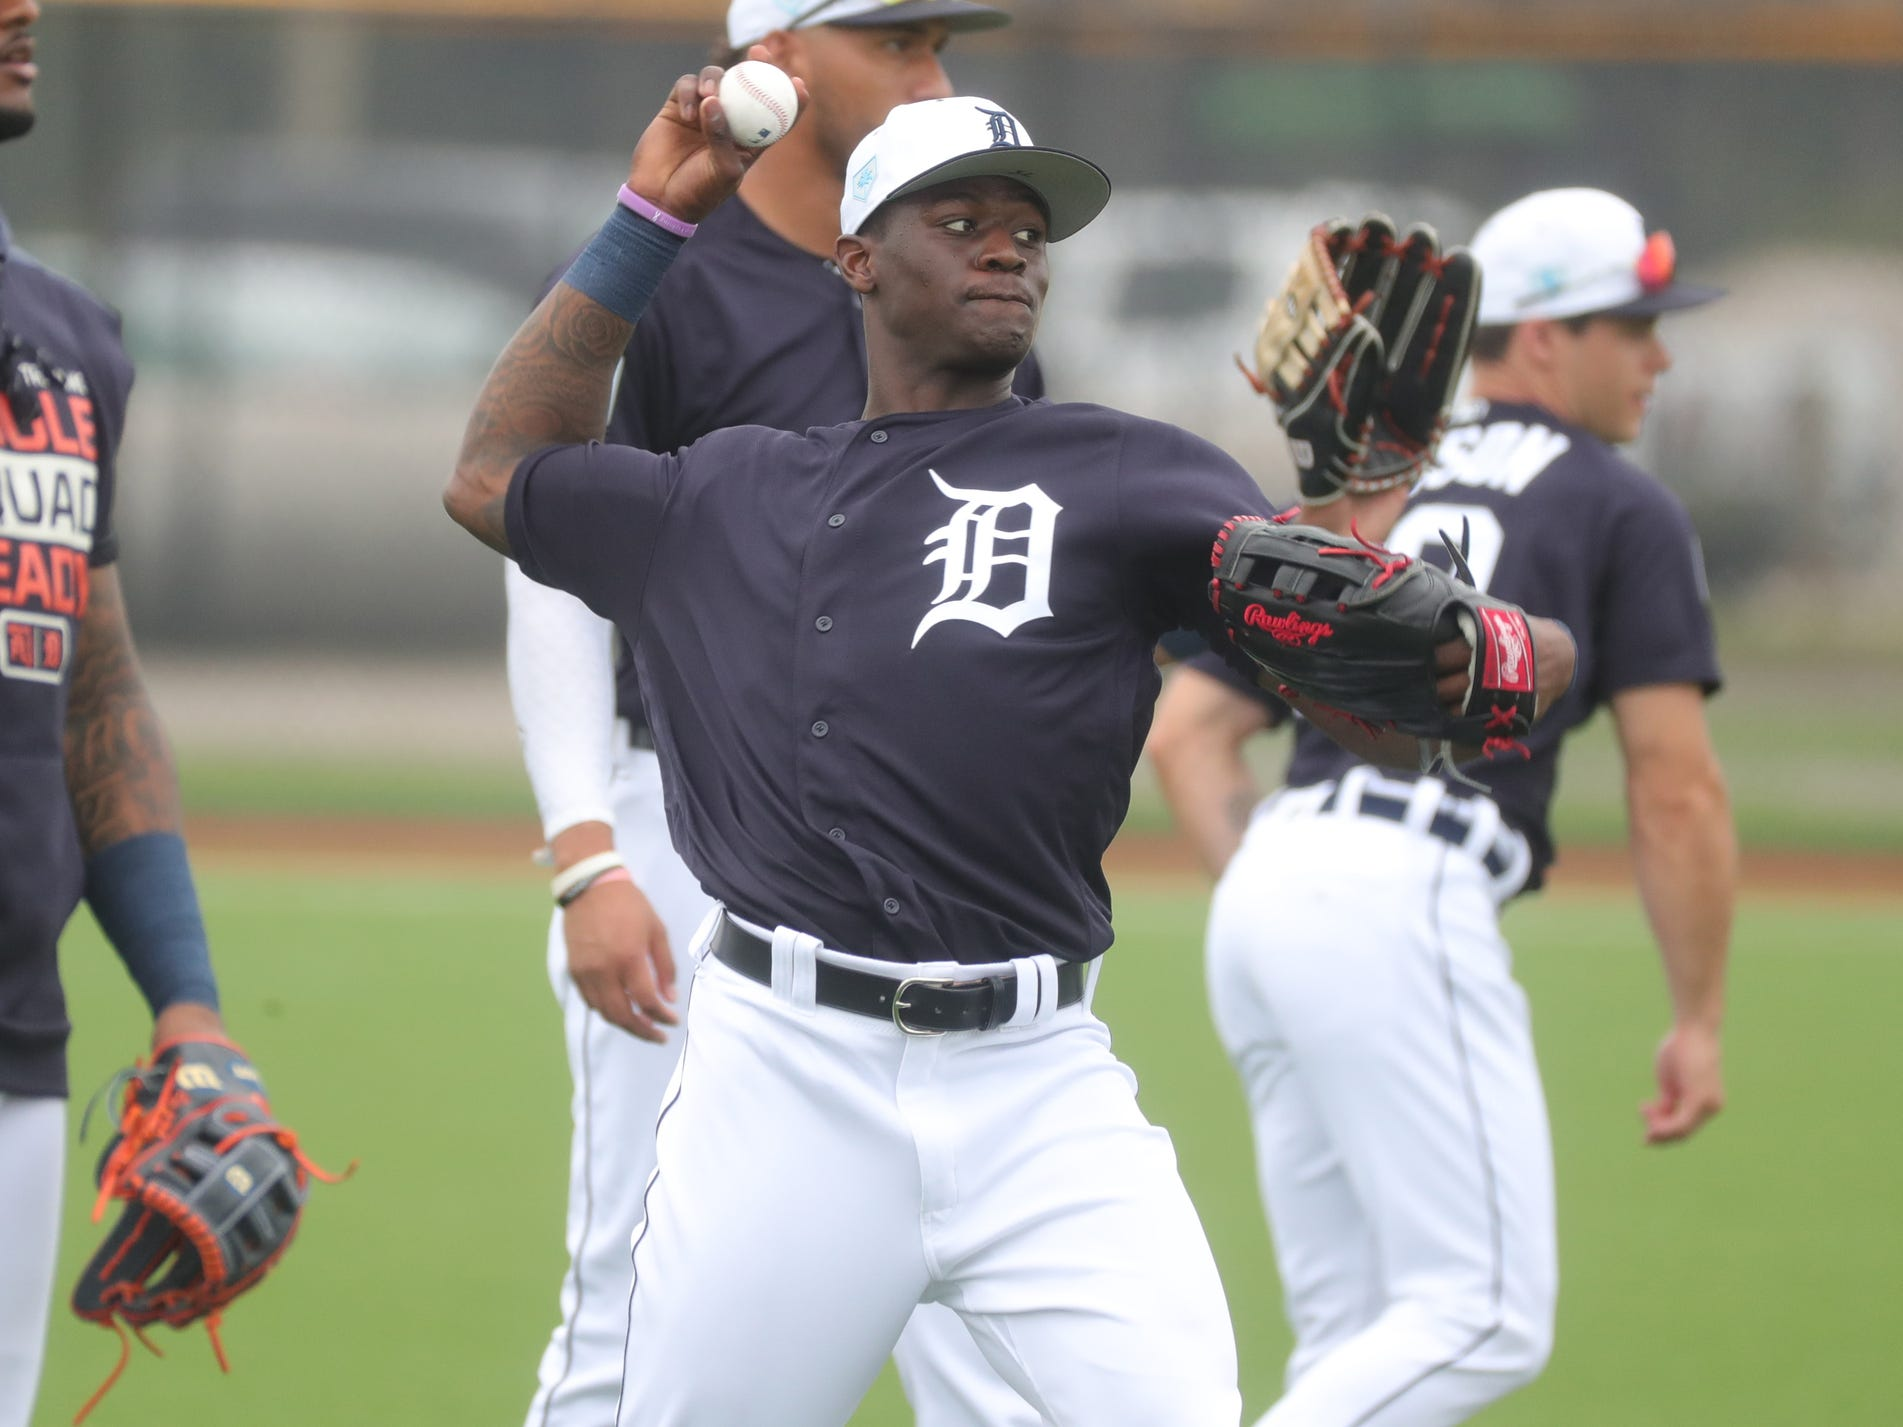 Tigers outfielder Daz Cameron warms up during spring training on Monday, Feb. 18, 2019, in Lakeland, Florida.